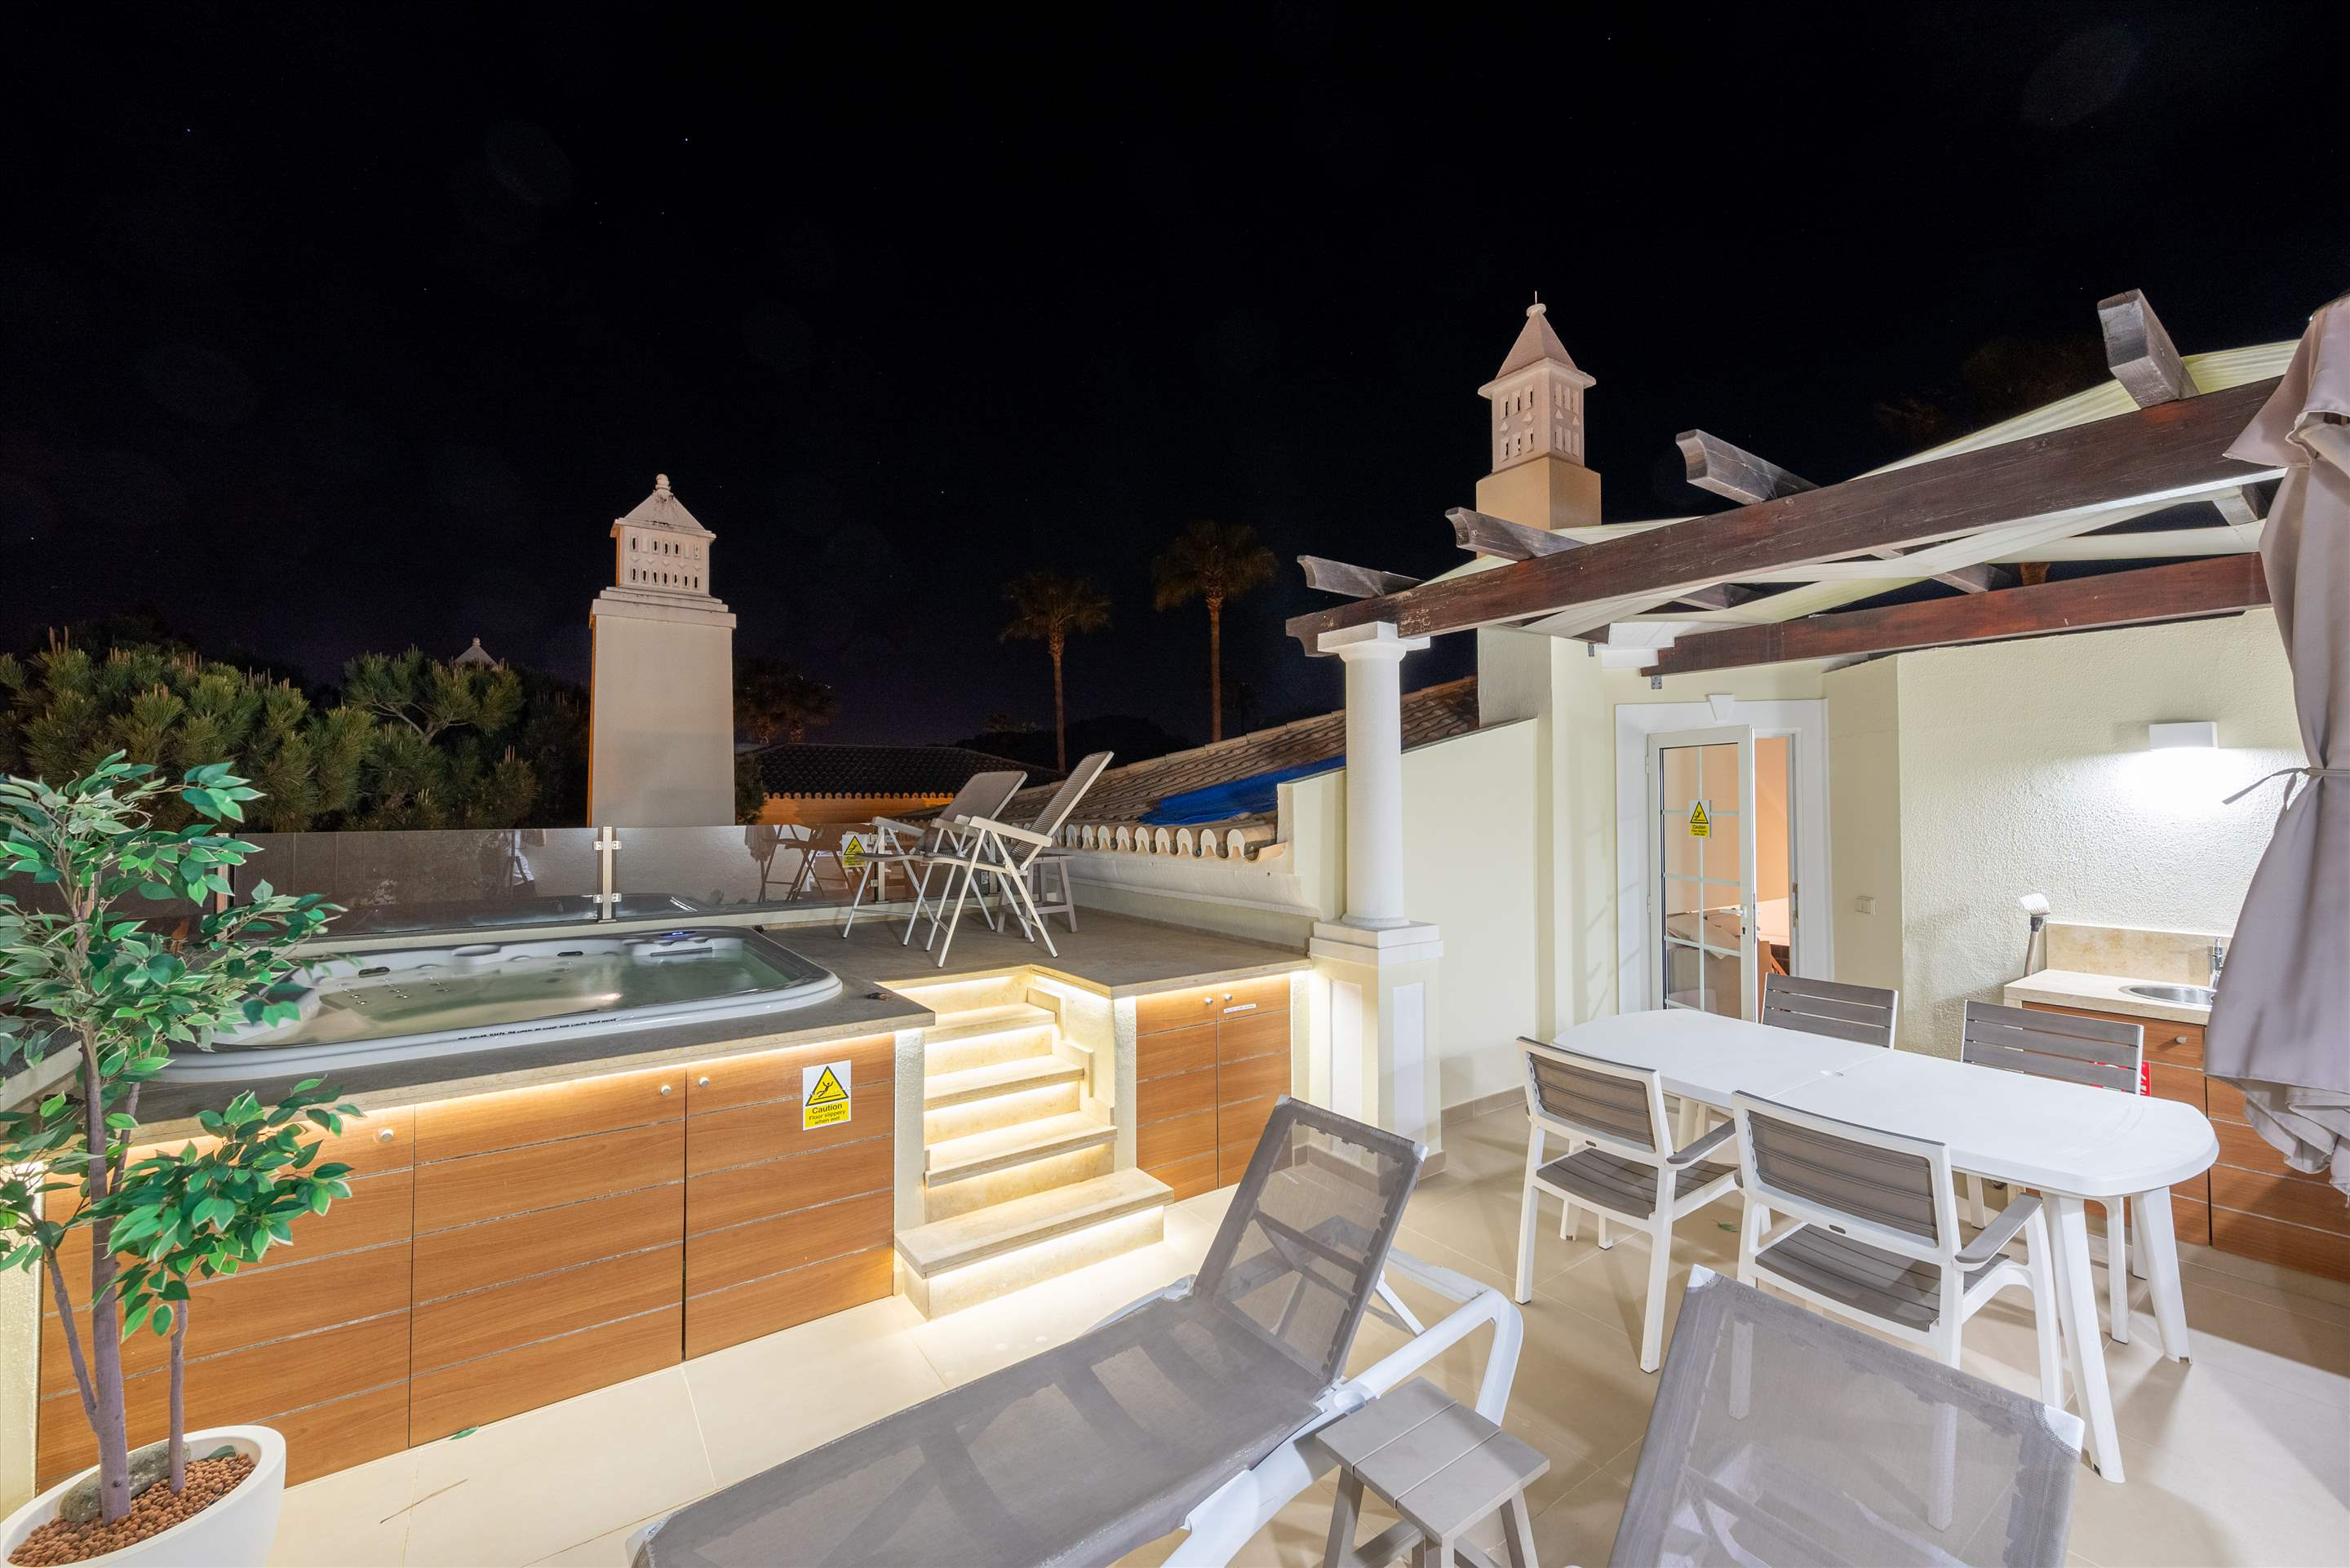 Apartment Jacinda, 2 bedroom apartment in Vale do Lobo, Algarve Photo #17